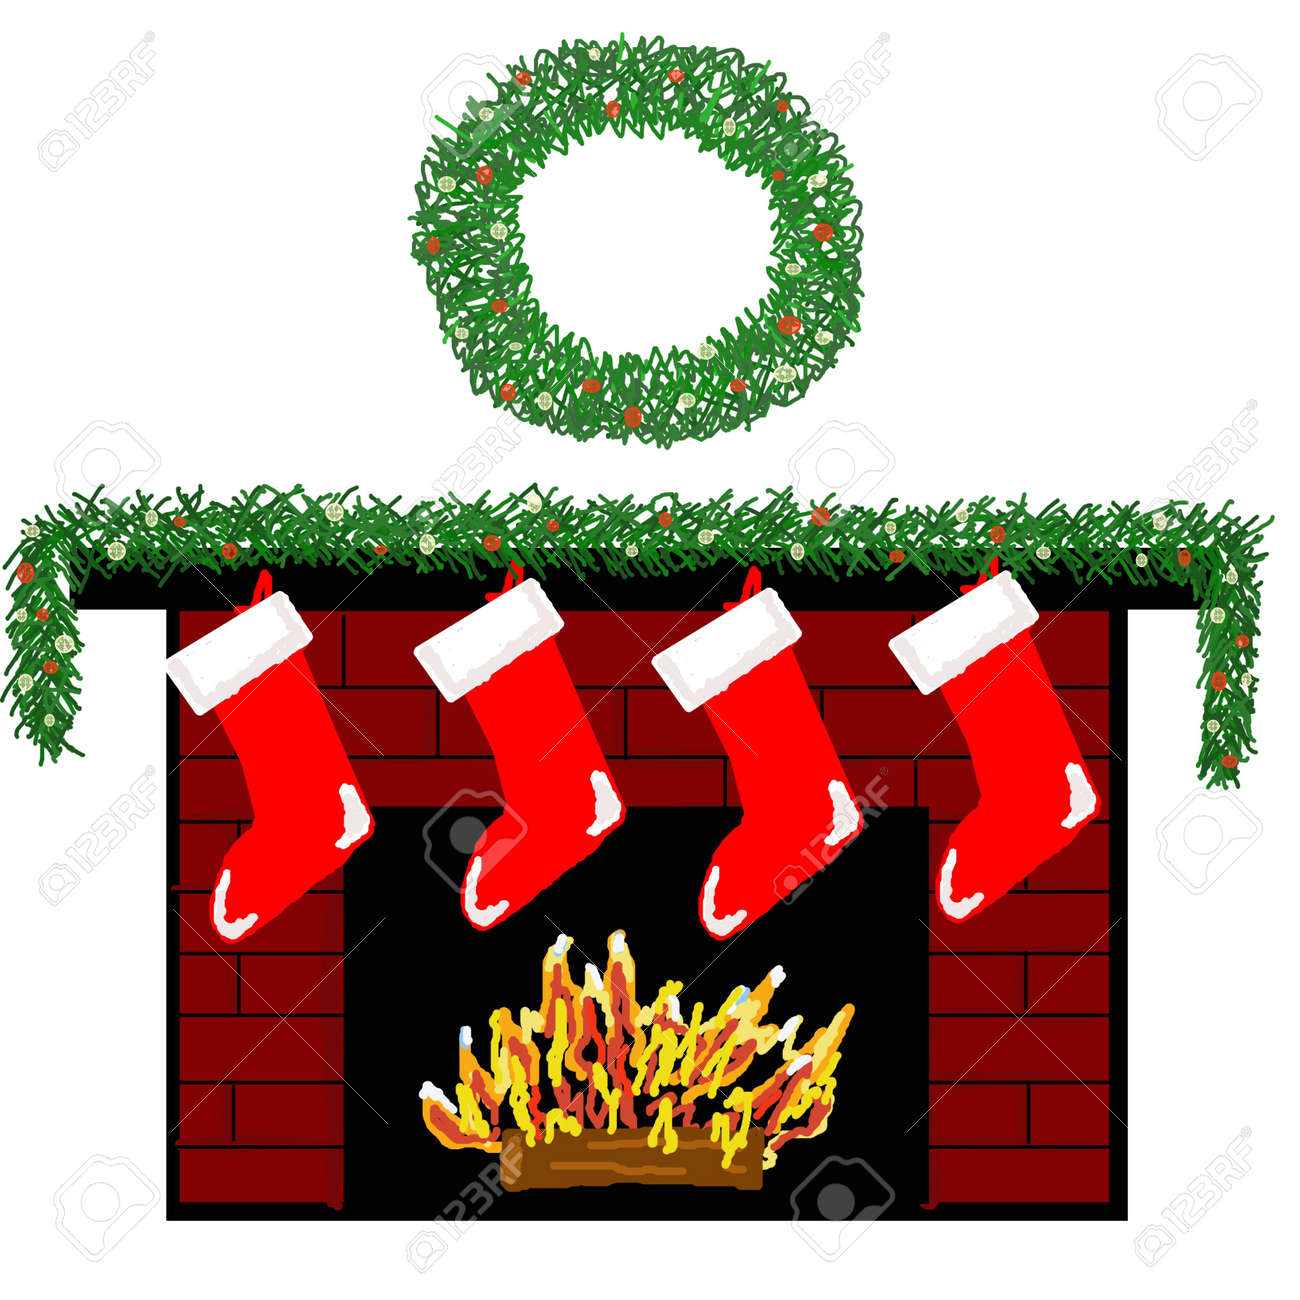 A Cozy Fireplace Decorated For Christmas With Stockings. Stock ...